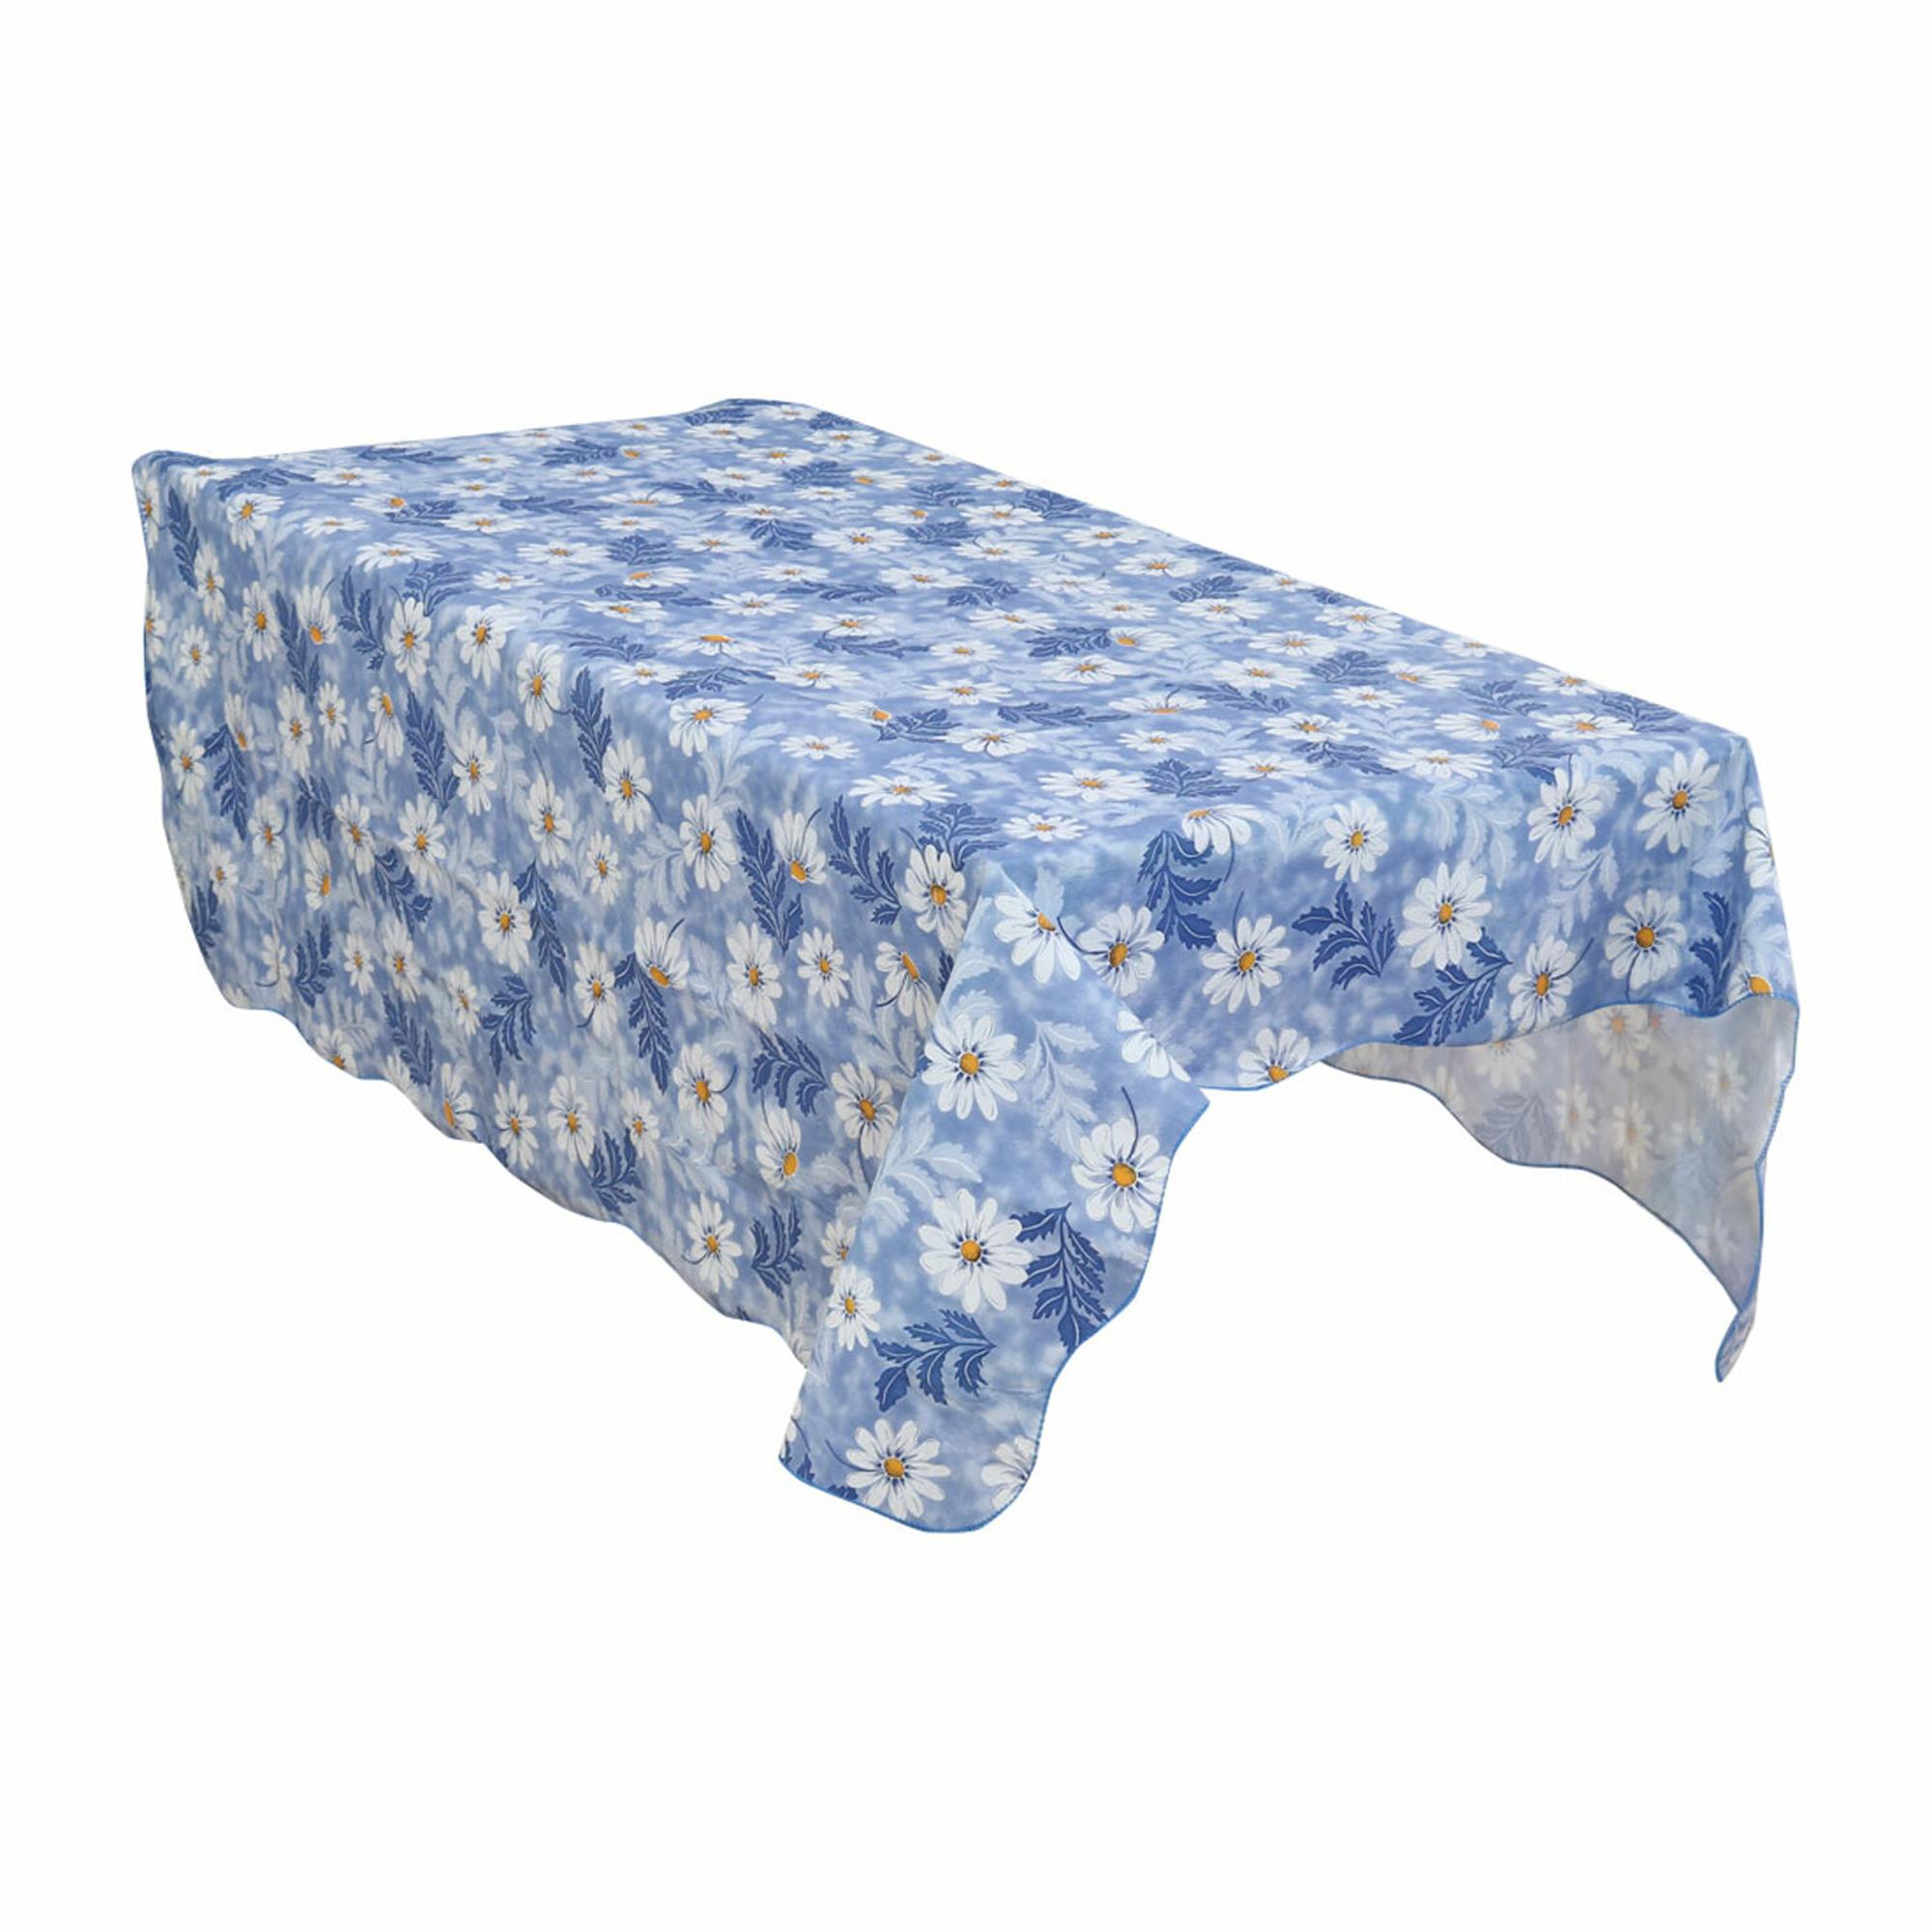 Home Picnic Daisy Pattern Water Resistant Oil-proof Tablecloth Table Cloth Cover Blue 71 x 54 Inch